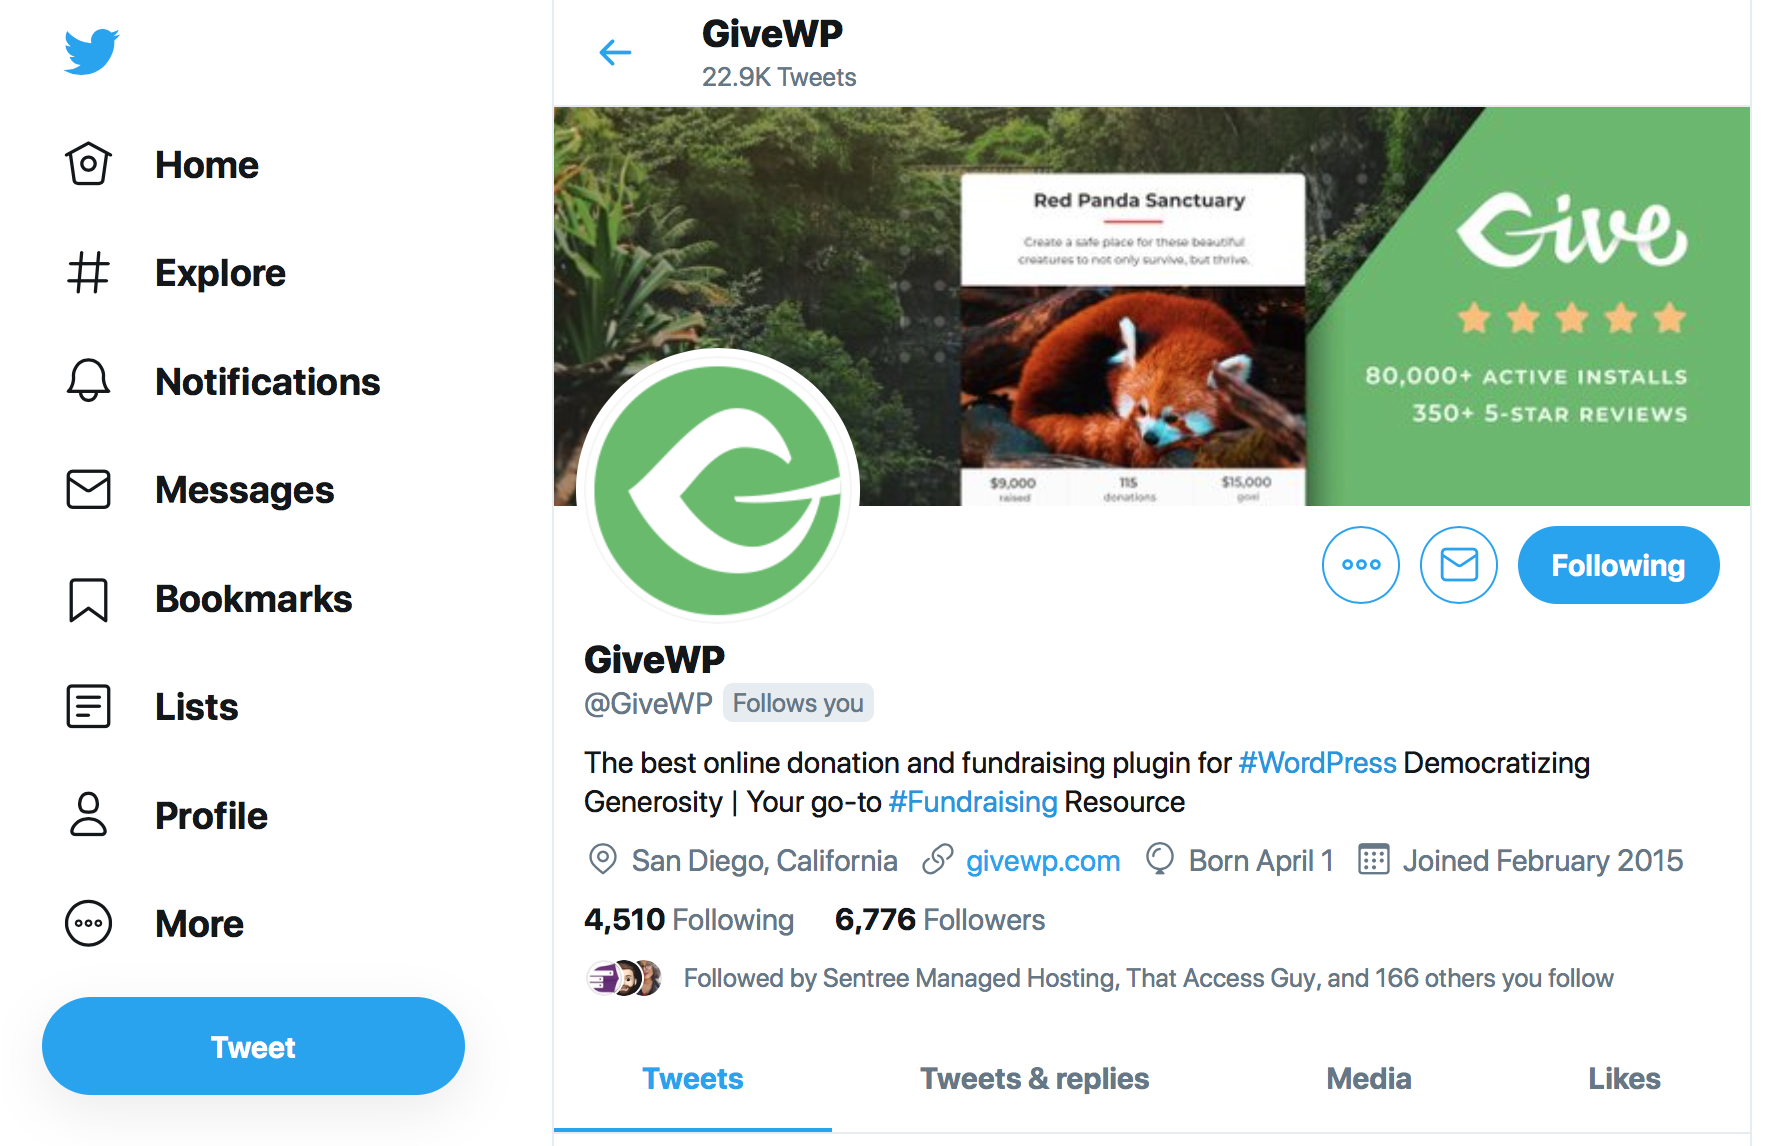 The GiveWP Twitter page has a custom header photo, the Give logo as a profile photo, a short bio with a strategic hashtag, a number of lists, and a collection of moments.